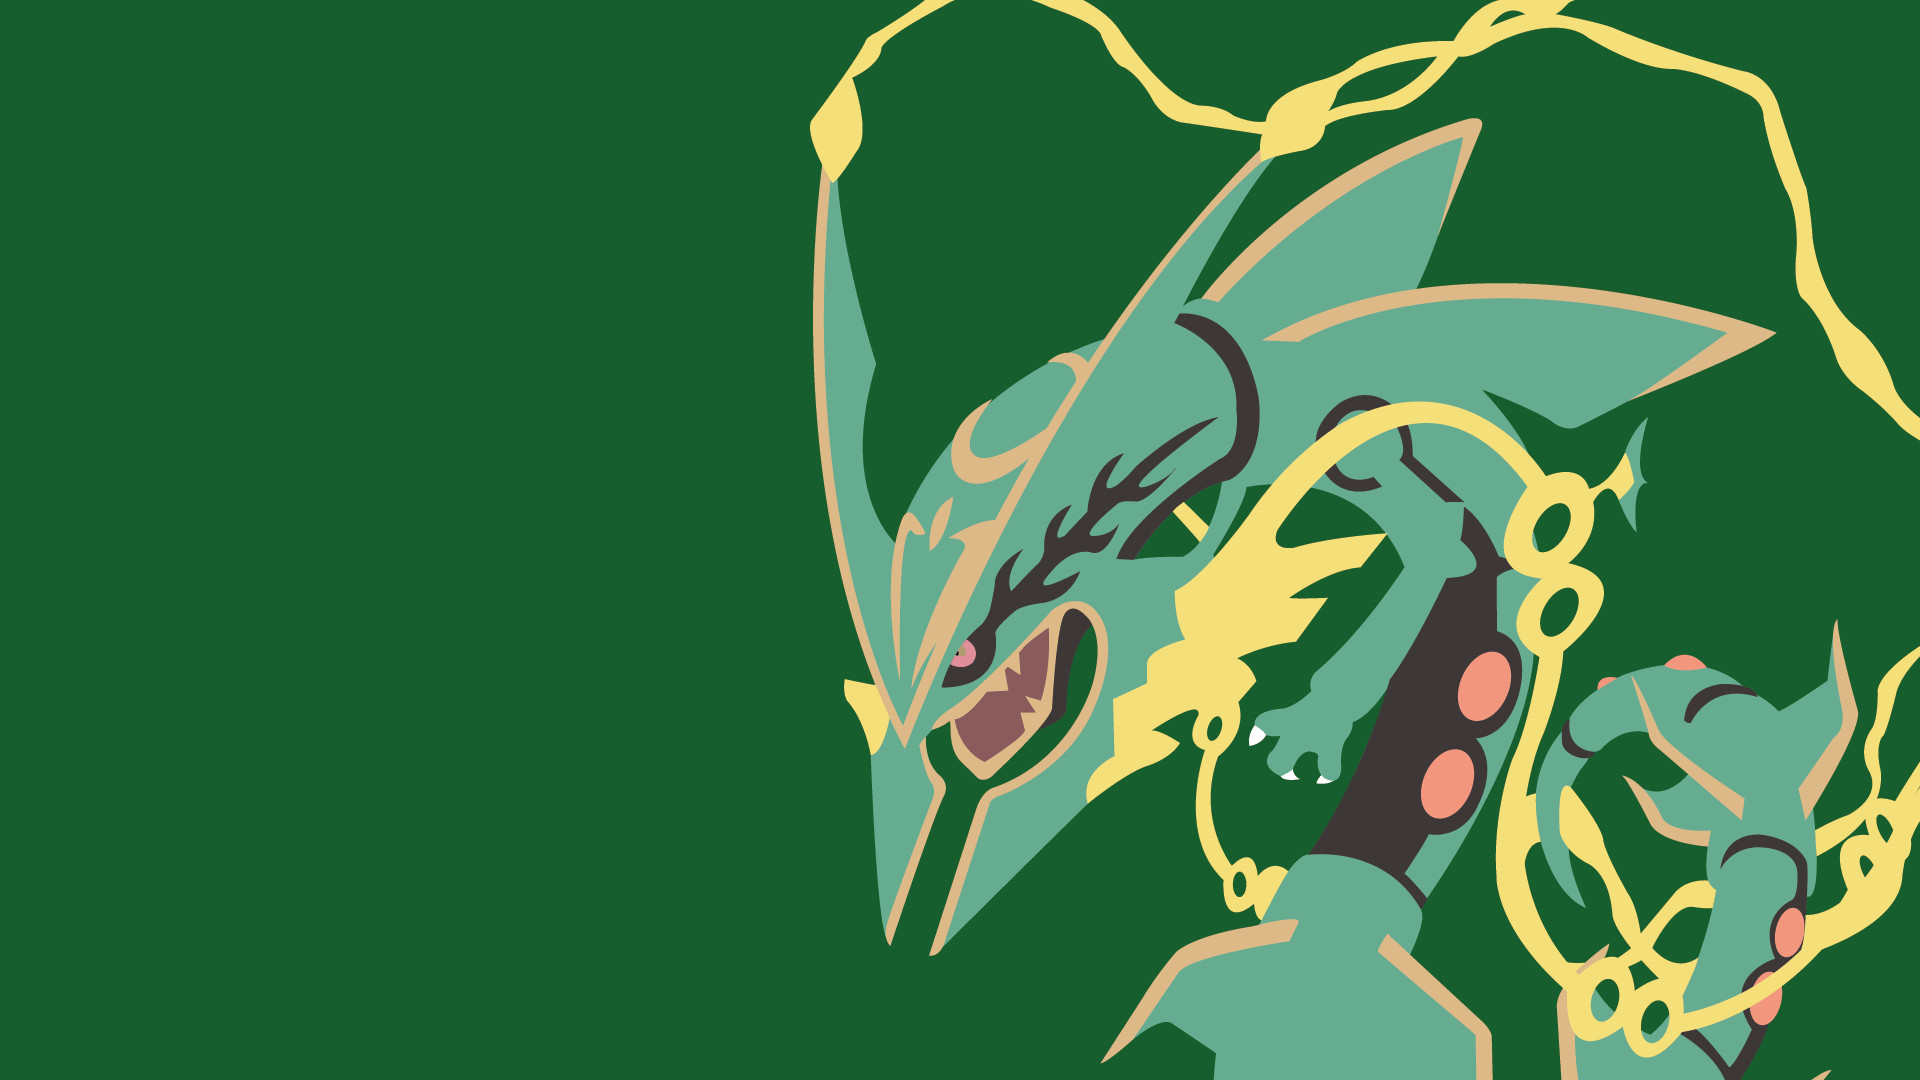 What Nature Pokemon Is The Best